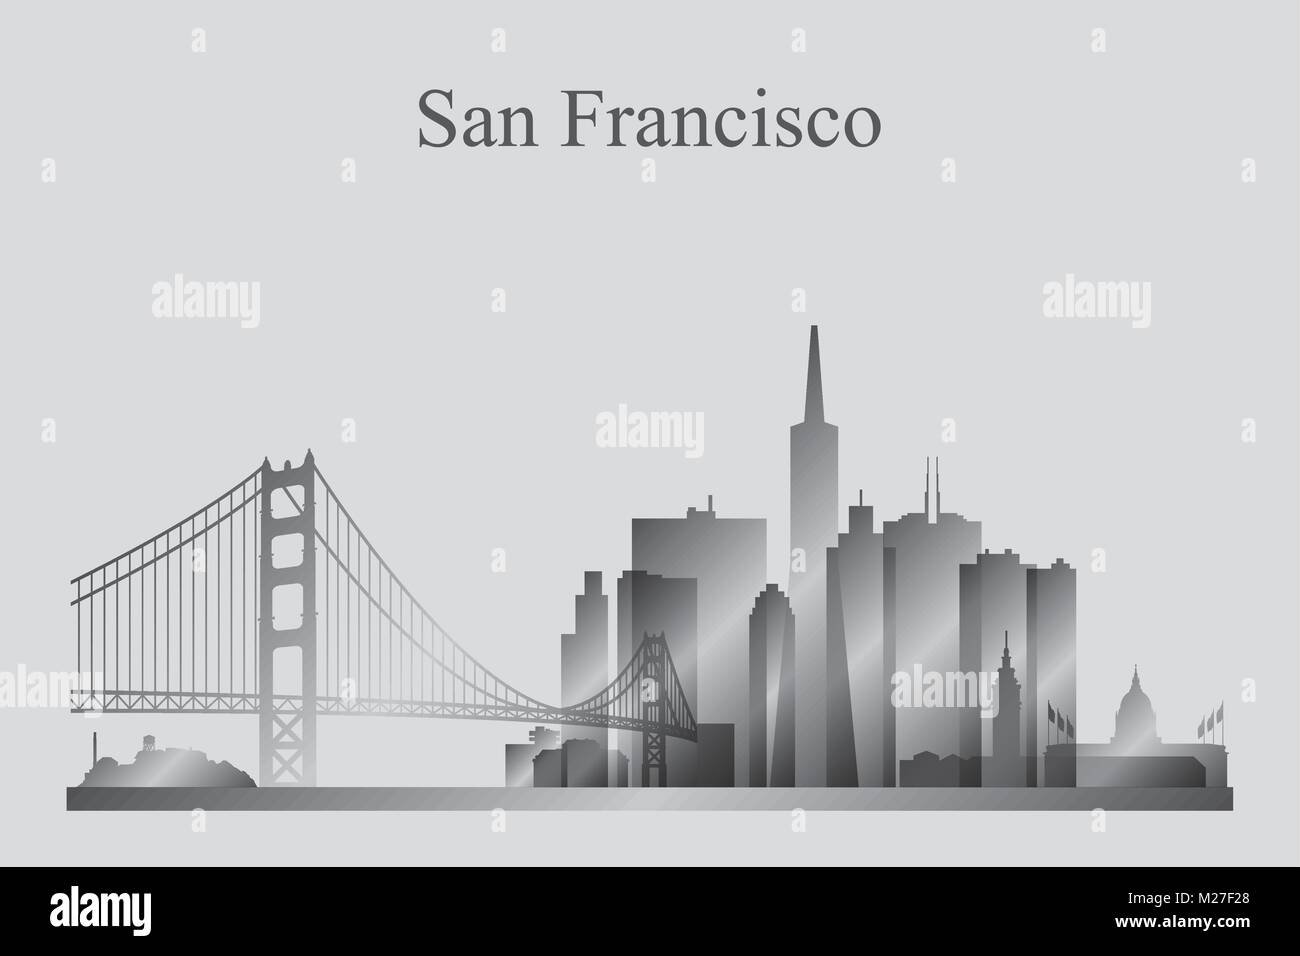 San Francisco city skyline silhouette en gris, vector illustration Photo Stock